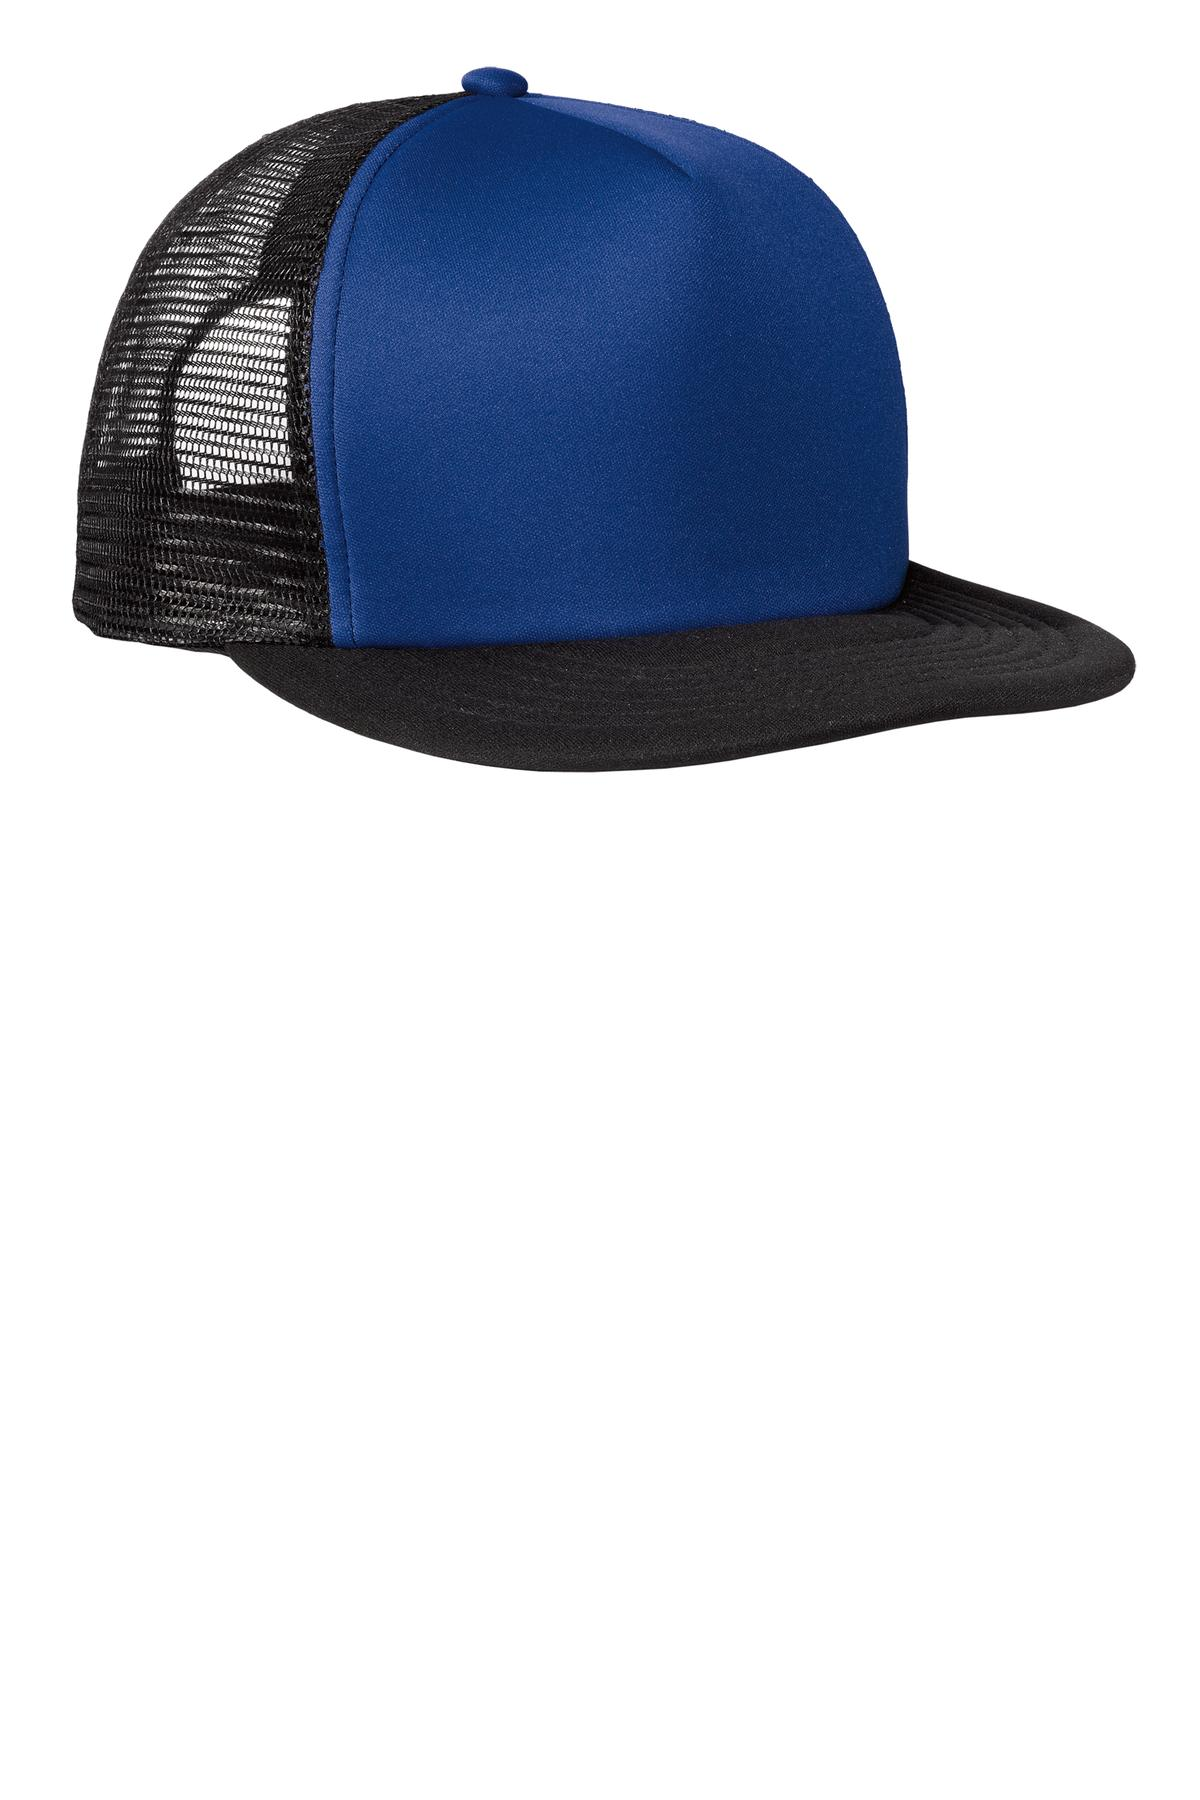 District ®  Flat Bill Snapback Trucker Cap. DT624 - Royal